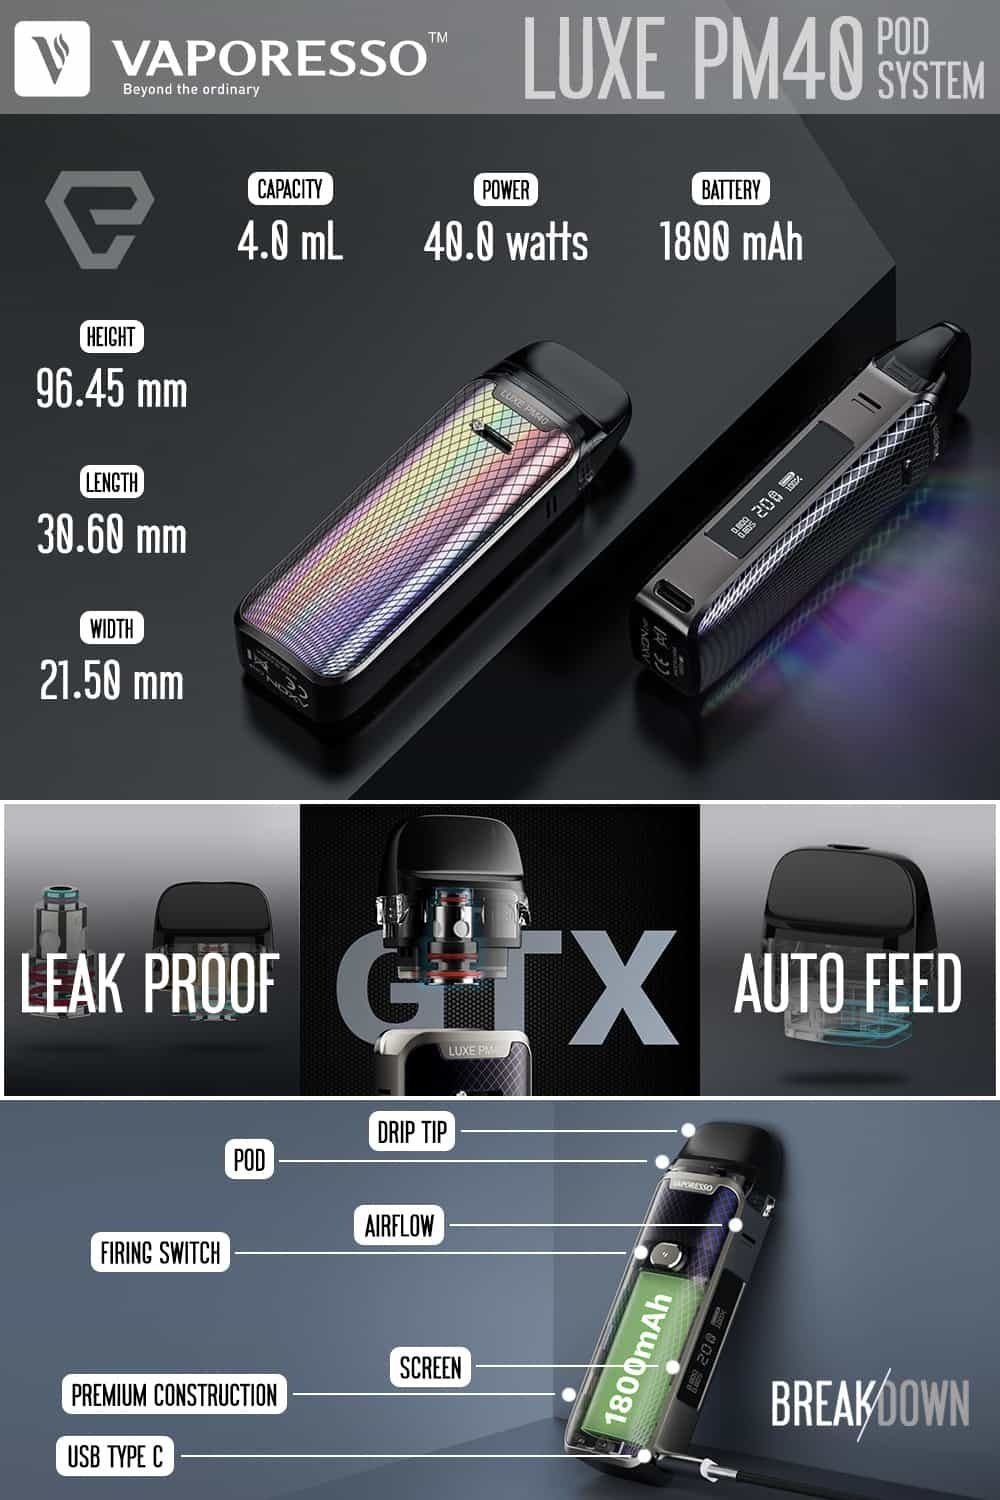 Vaporesso Luxe PM40 Infographic